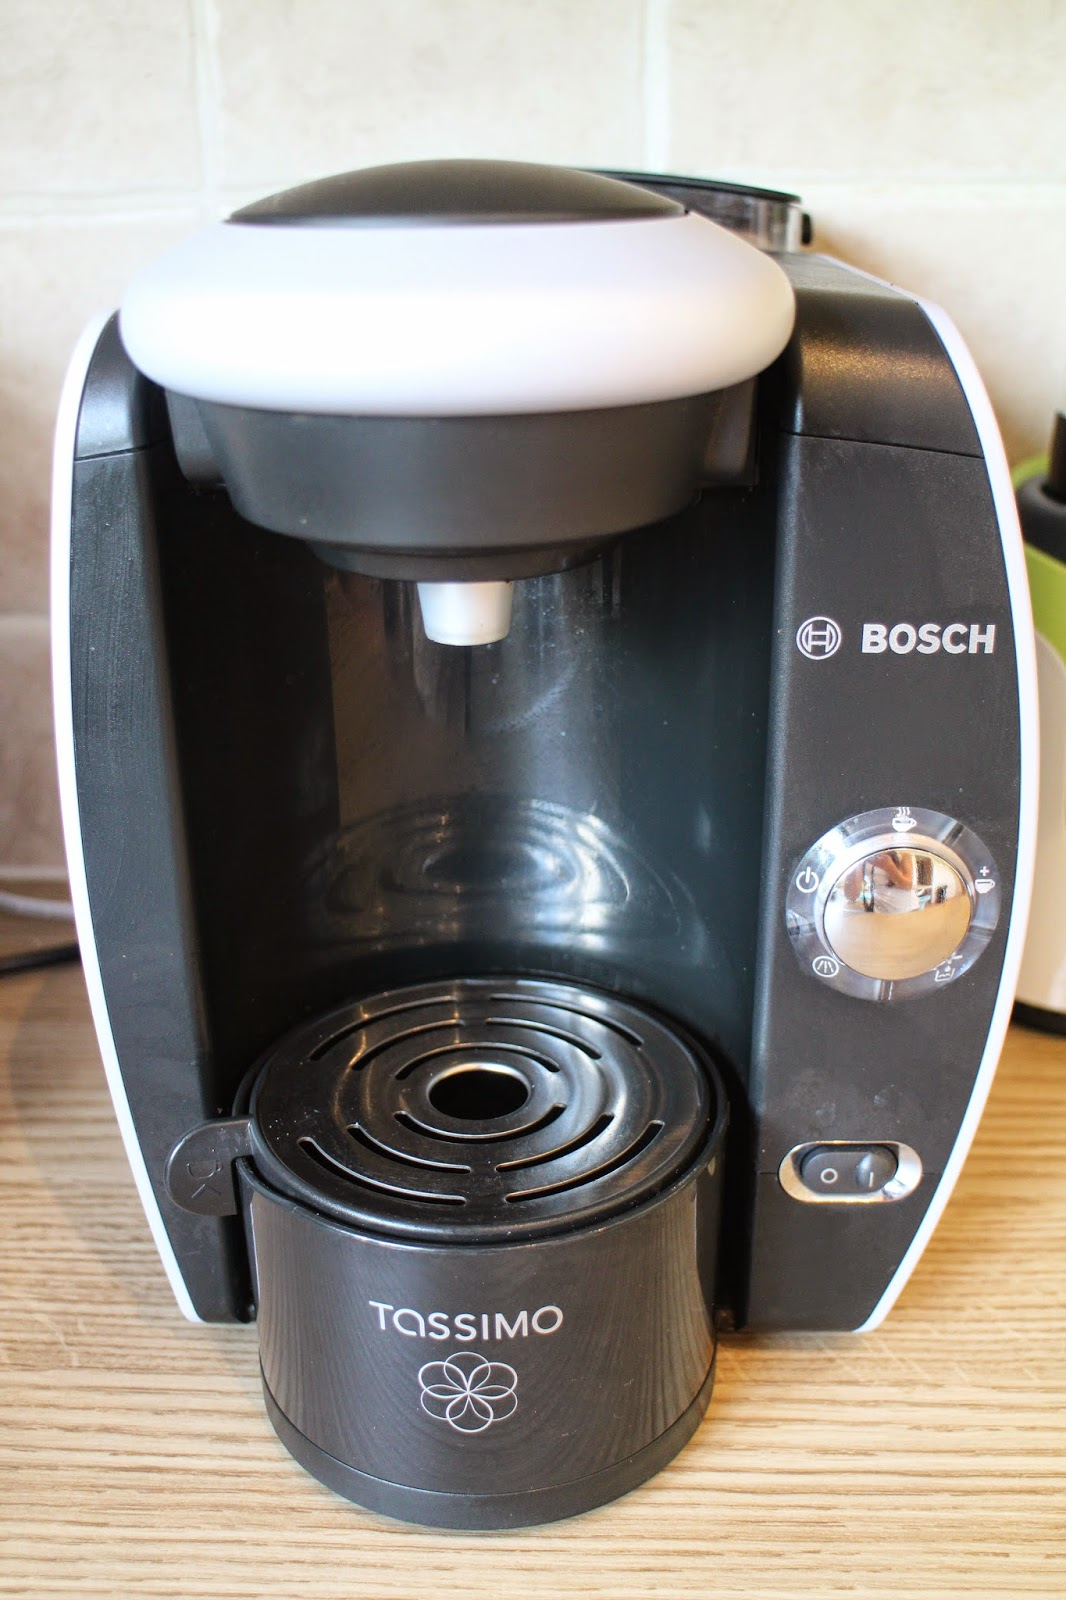 tassimo by bosch t40 fidelia multi drinks machine review. Black Bedroom Furniture Sets. Home Design Ideas